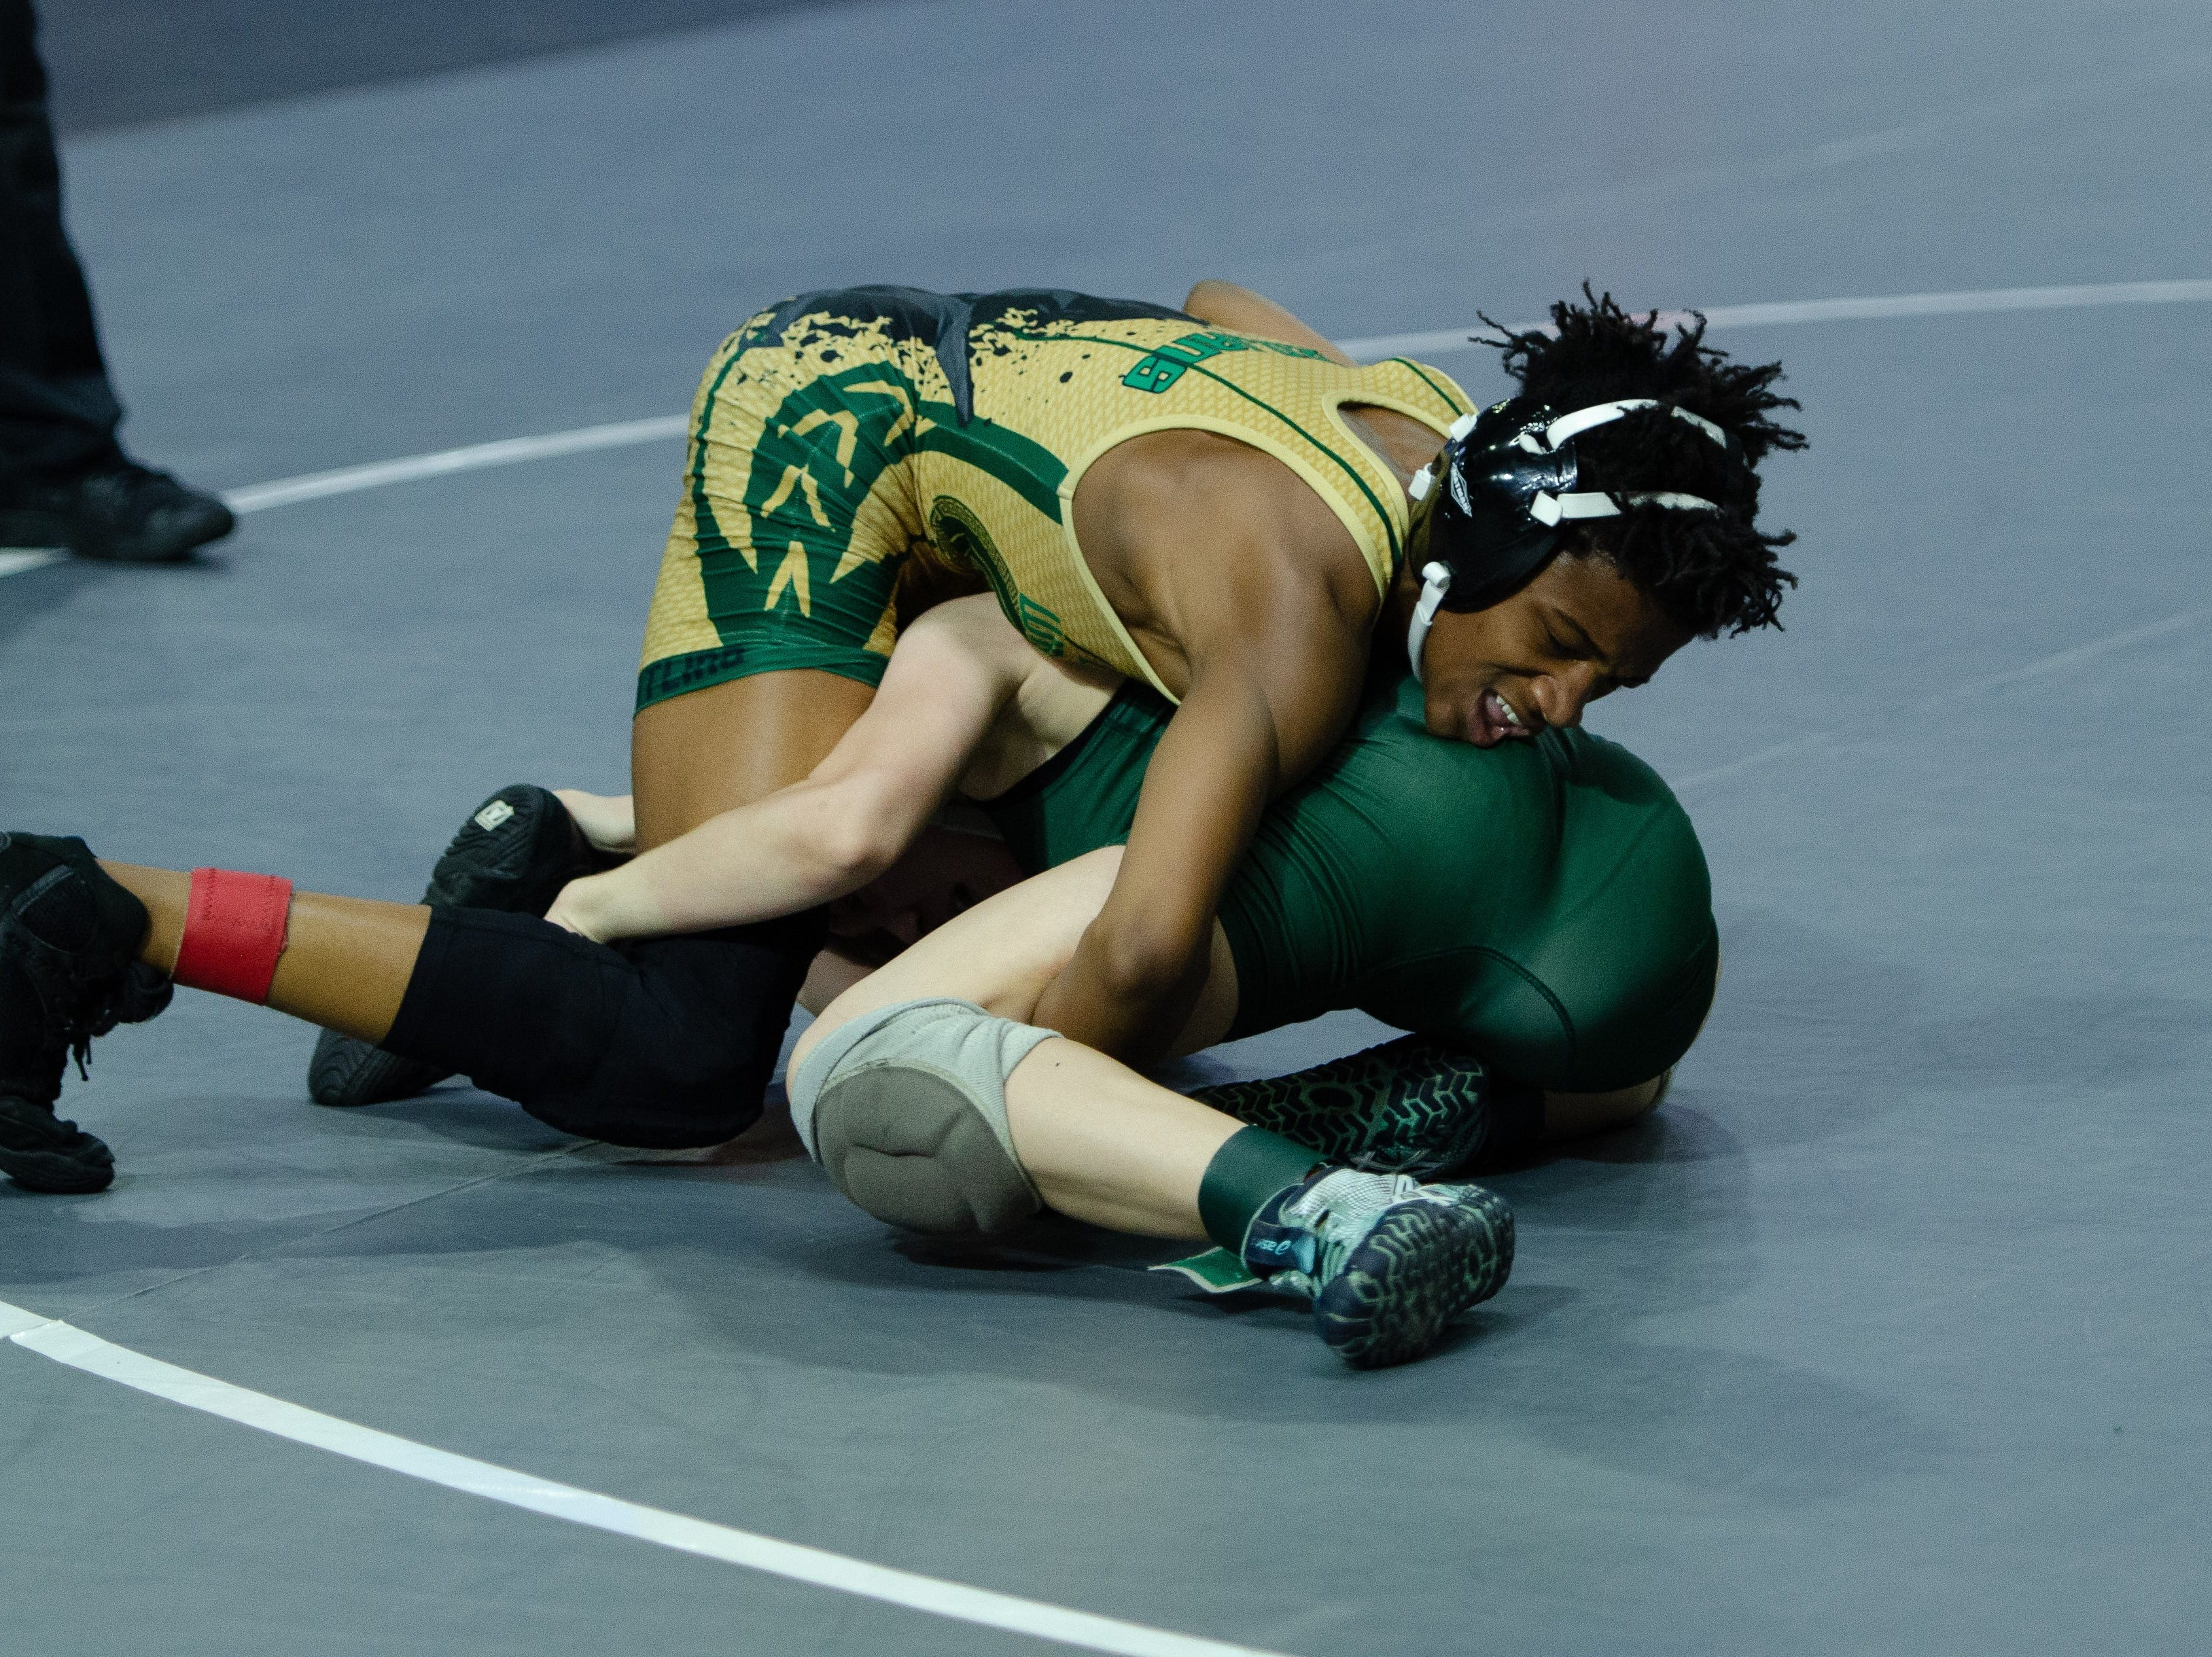 Lincoln's Elijah Hendley wrestles at the FHSAA Wrestling State Championships inside Silver Spur Arena in Kissimmee.